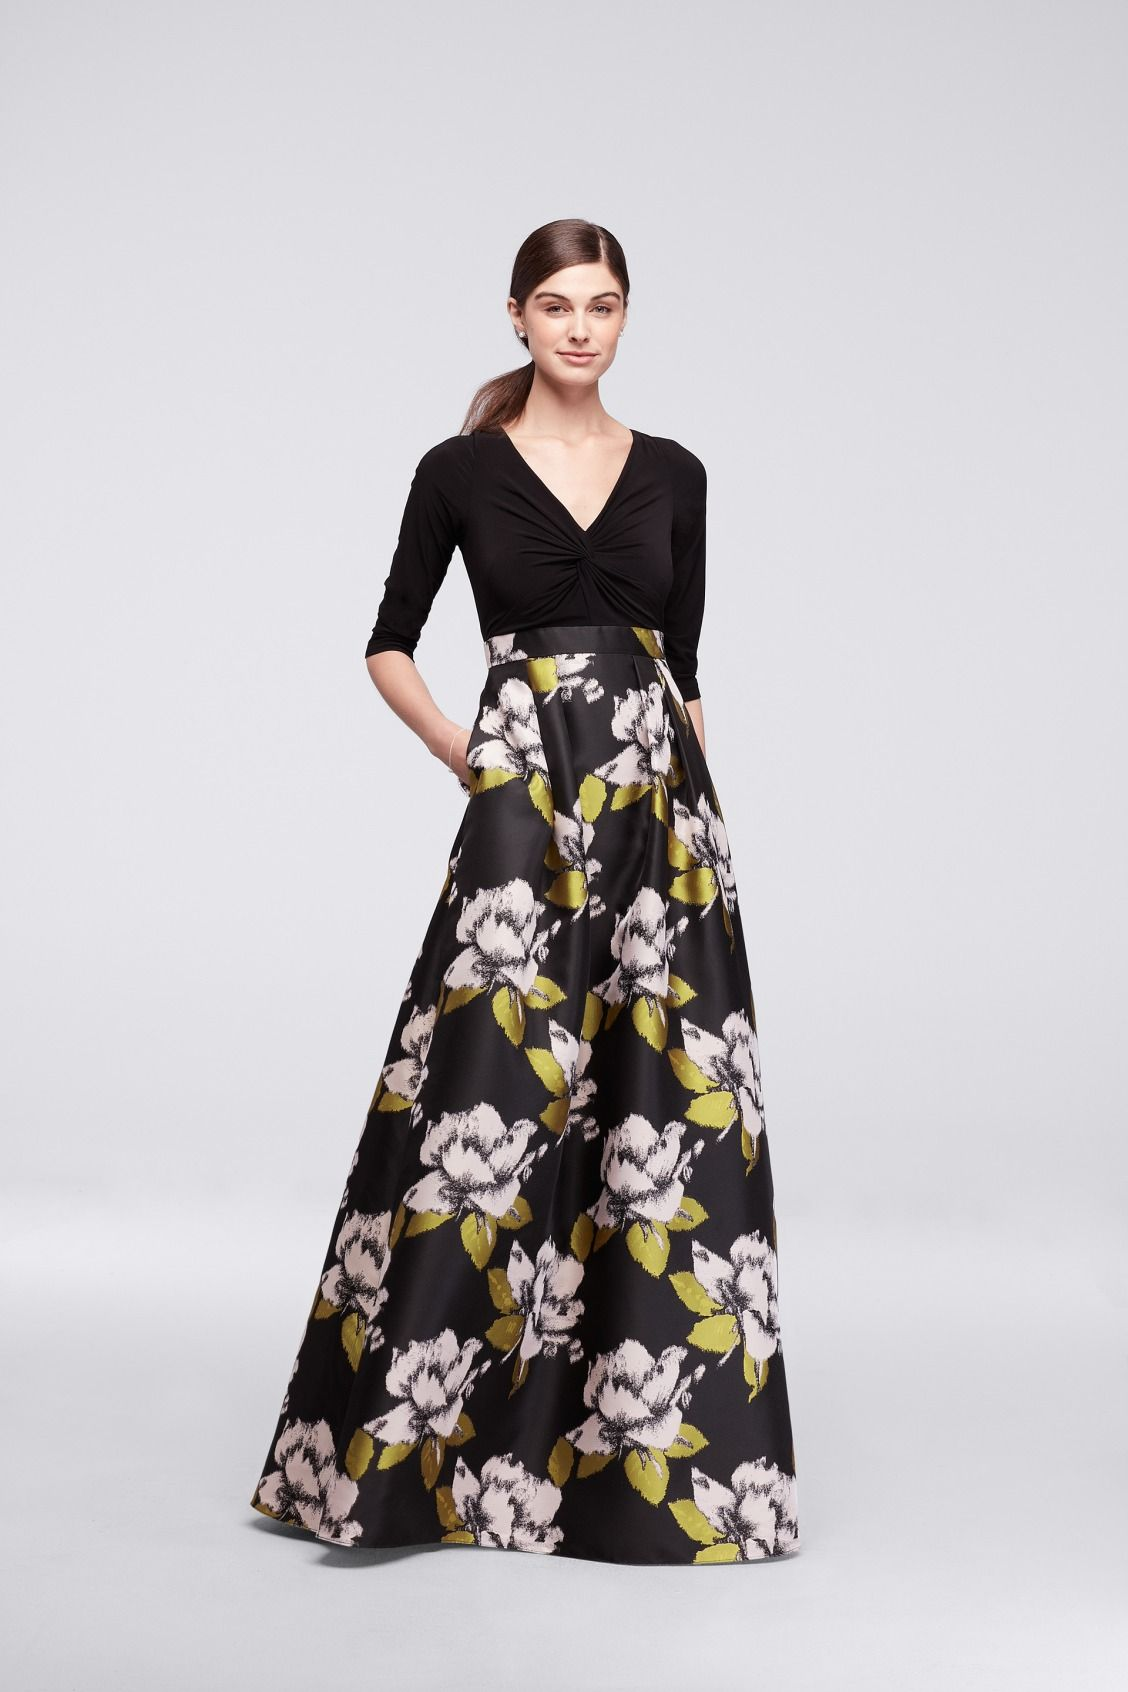 17f94bafa4c9 Long Dress with Bold Black White and Yellow Floral Skirt and 3/4 Sleeves by  Adrianna Papell available at David's Bridal